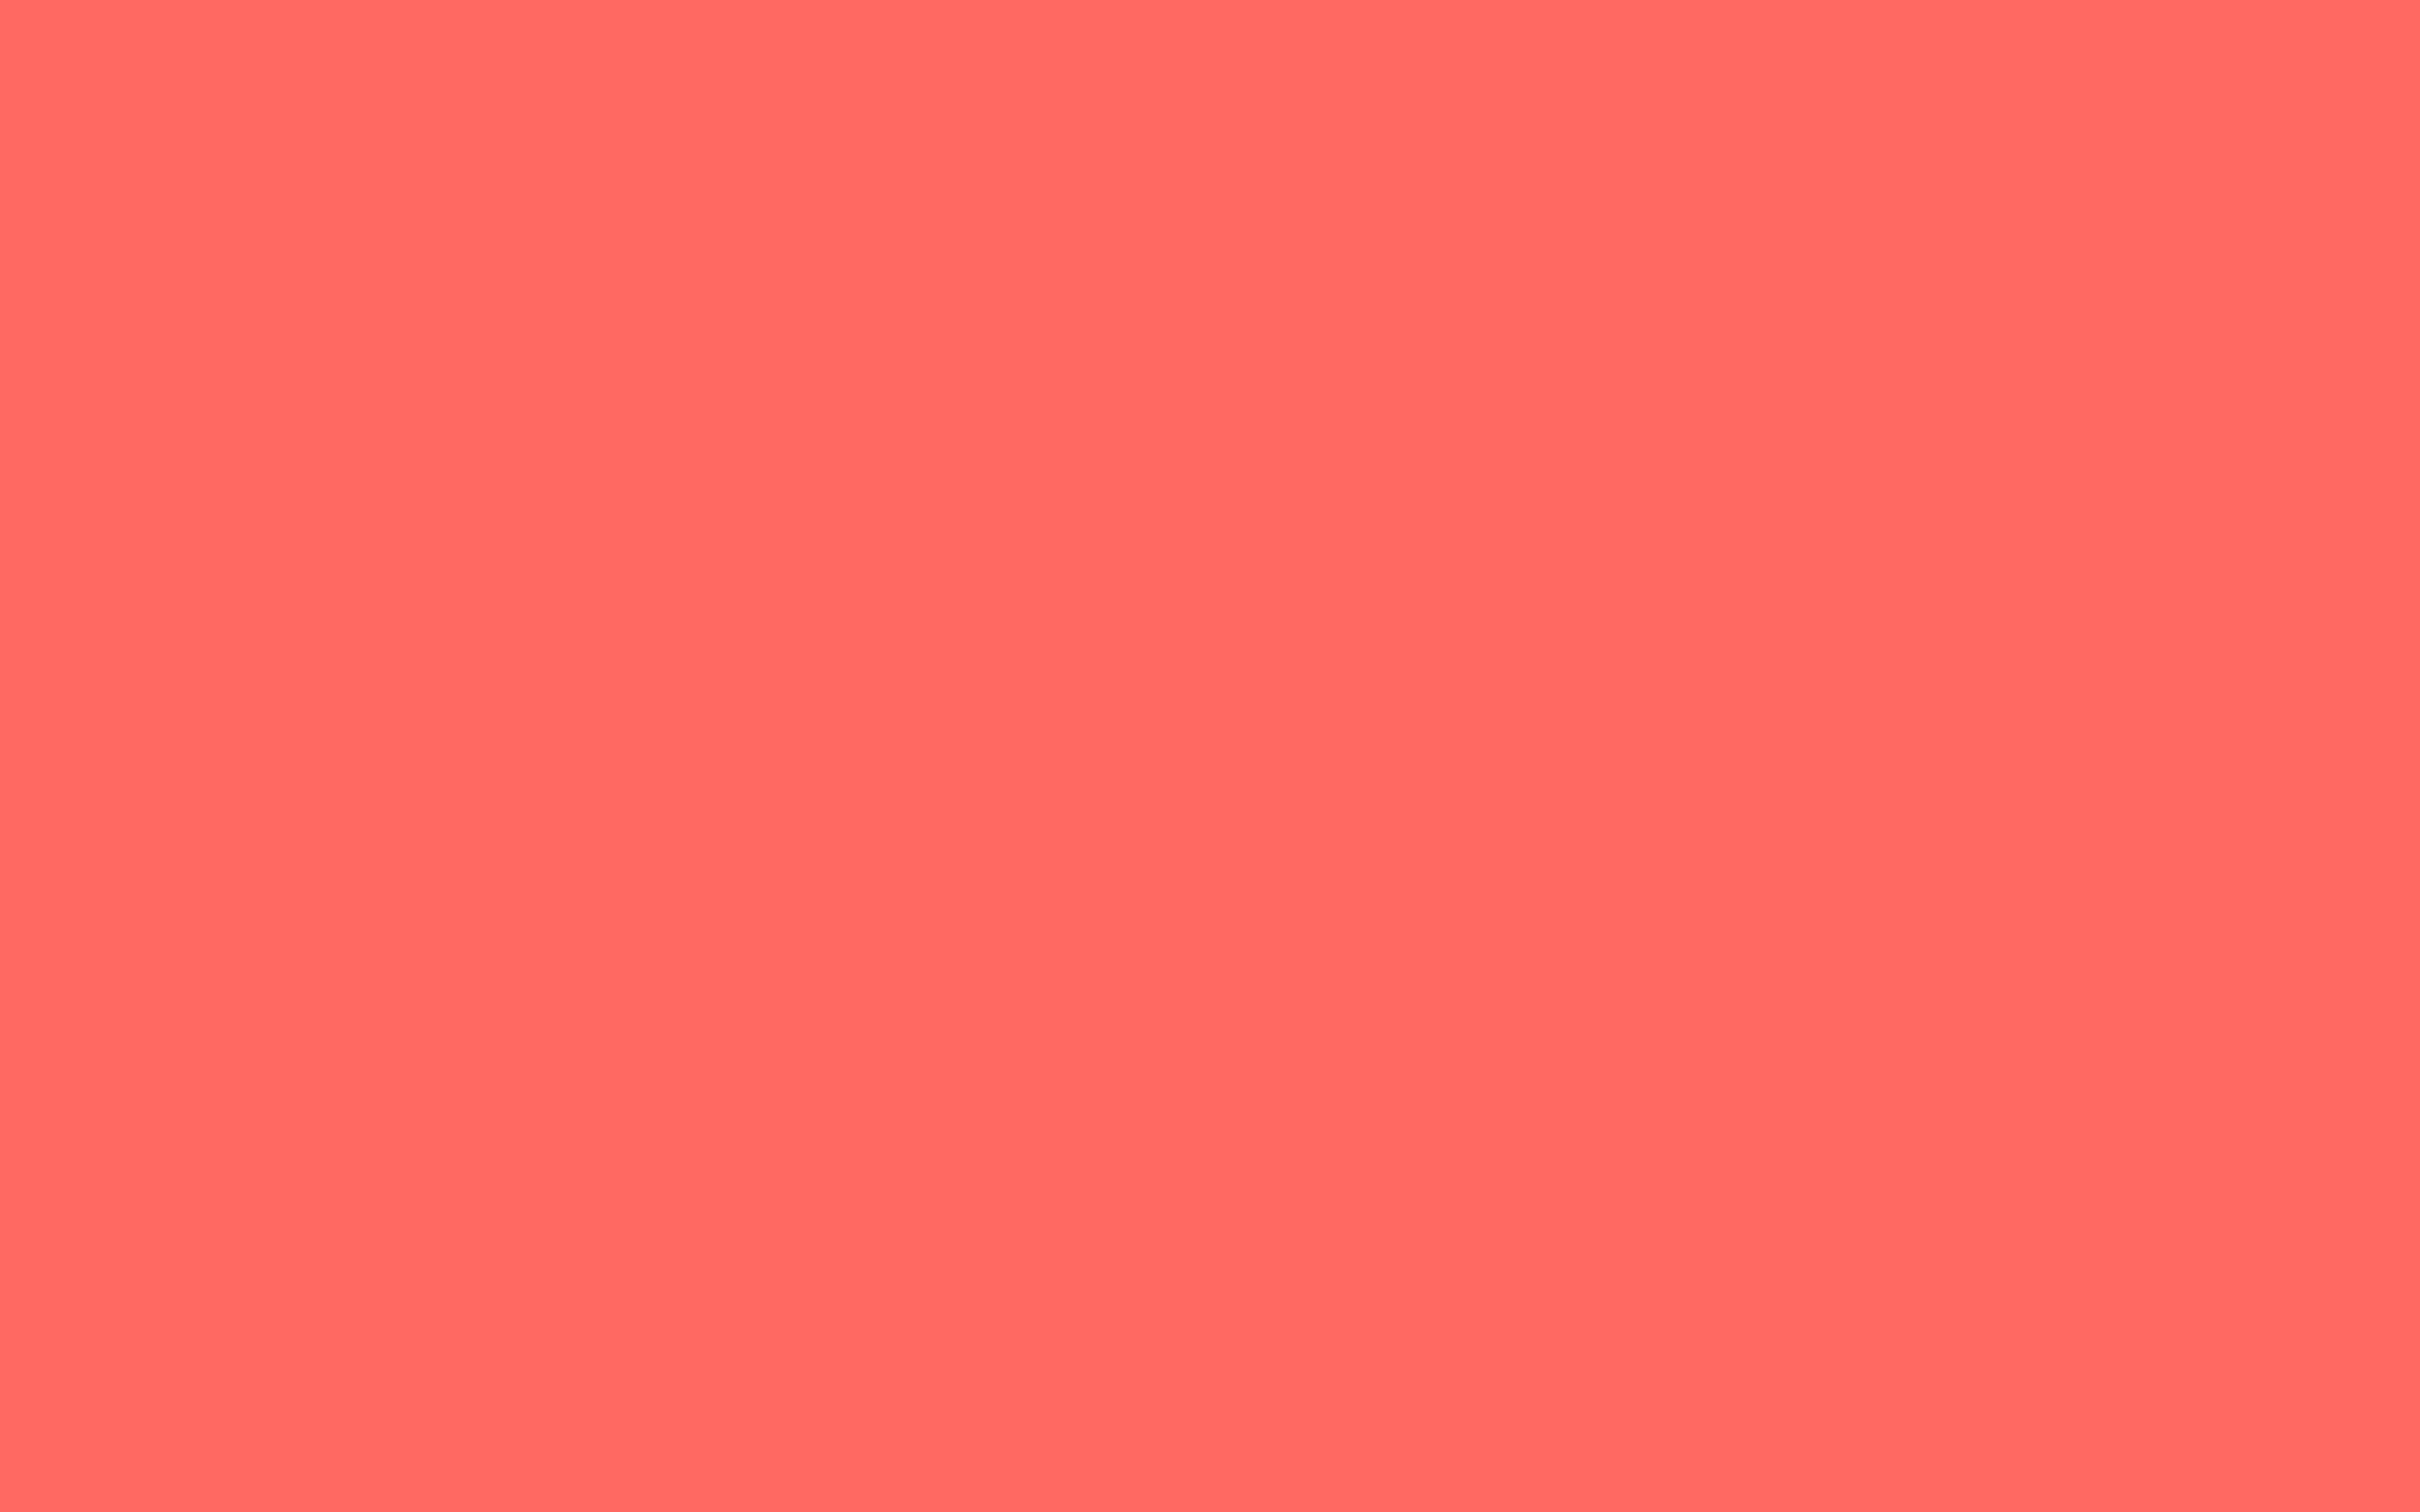 2560x1600 Pastel Red Solid Color Background